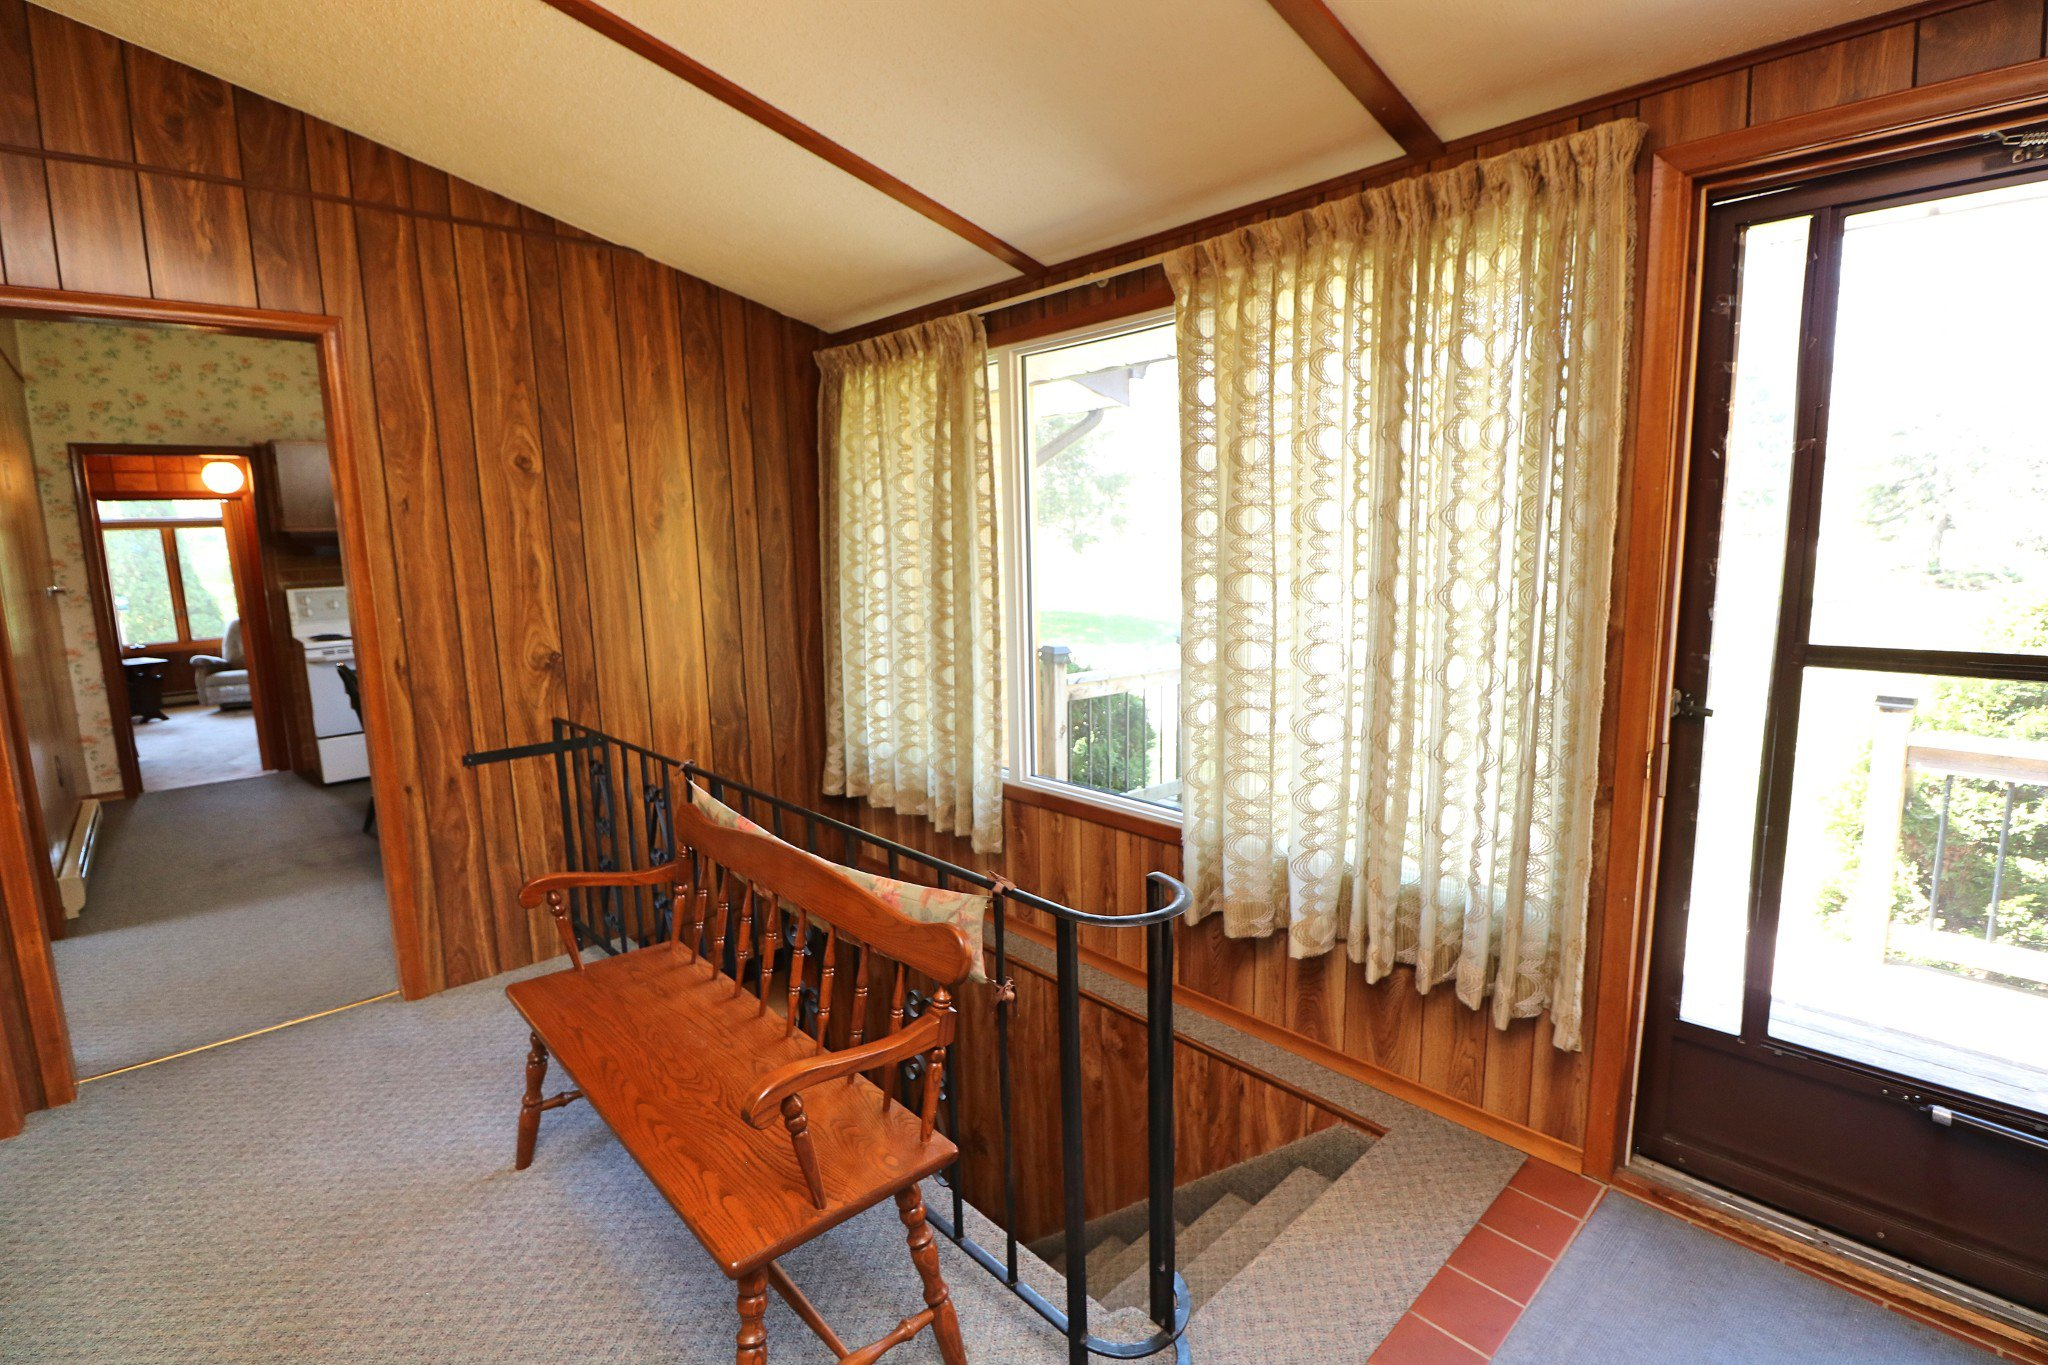 Photo 3: Photos: 37 Halstead Drive in Roseneath: Residential Detached for sale : MLS®# 192863